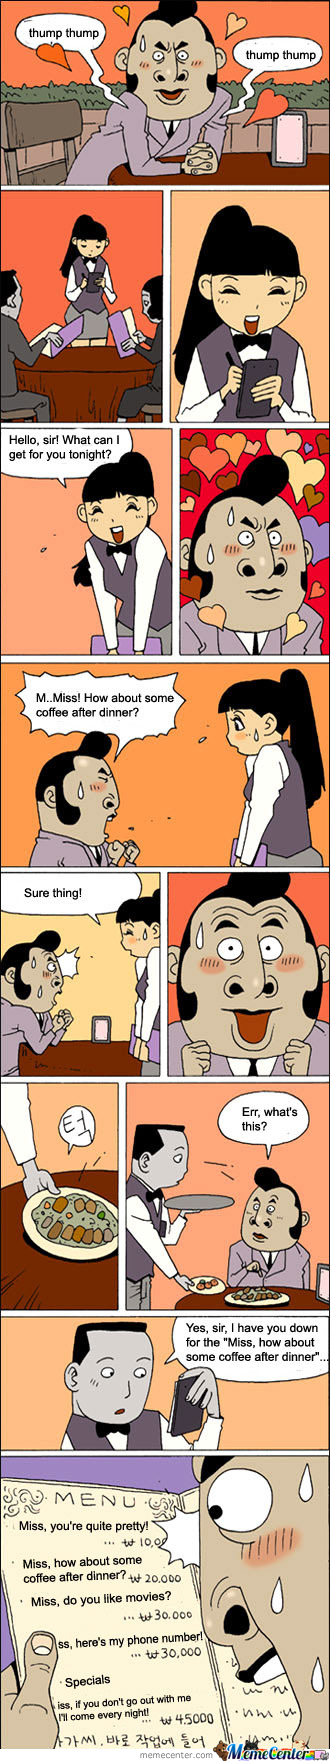 Korean Comic #7